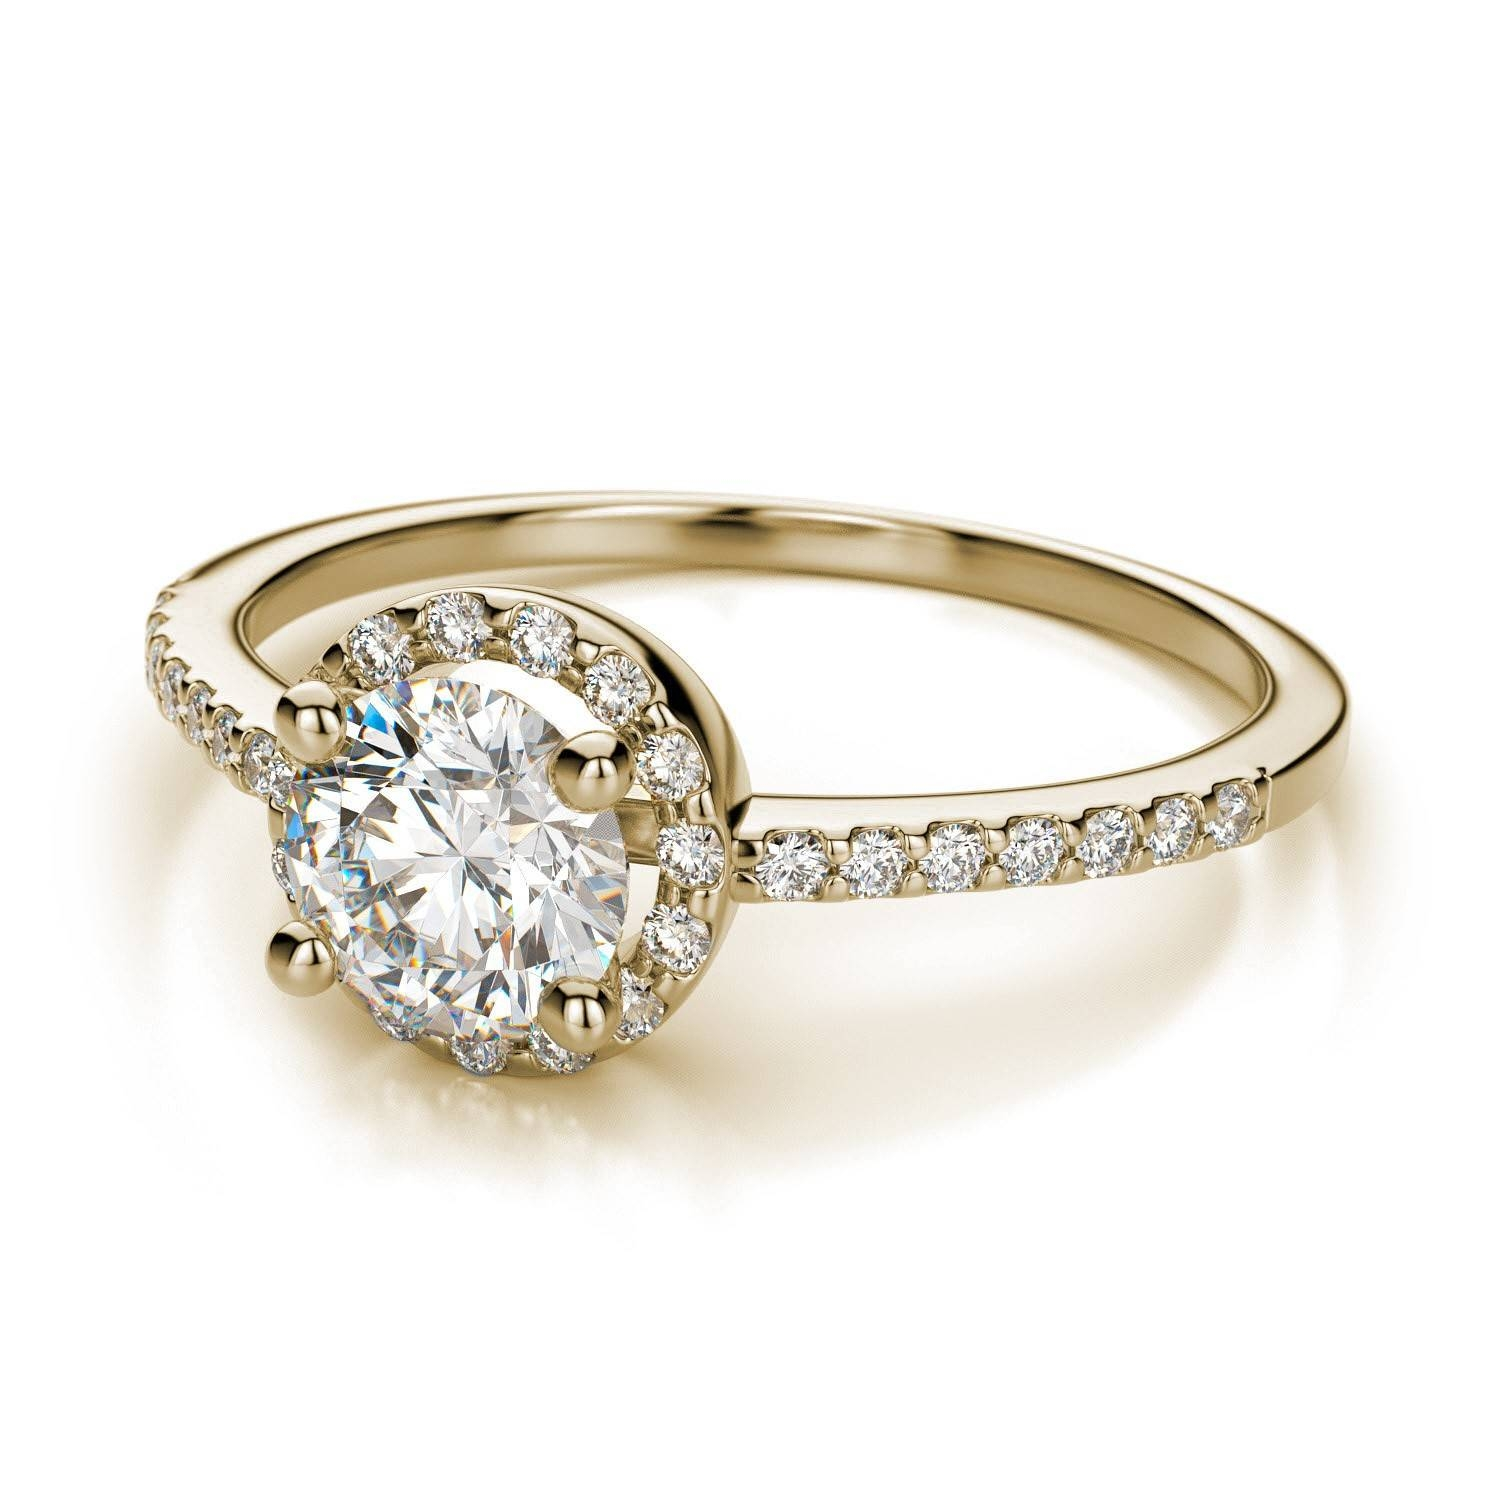 22Ctw Petite Halo Round Diamond Sidestones Ring Setting In 18K Inside Engagement Rings 18K Yellow Gold (View 2 of 15)